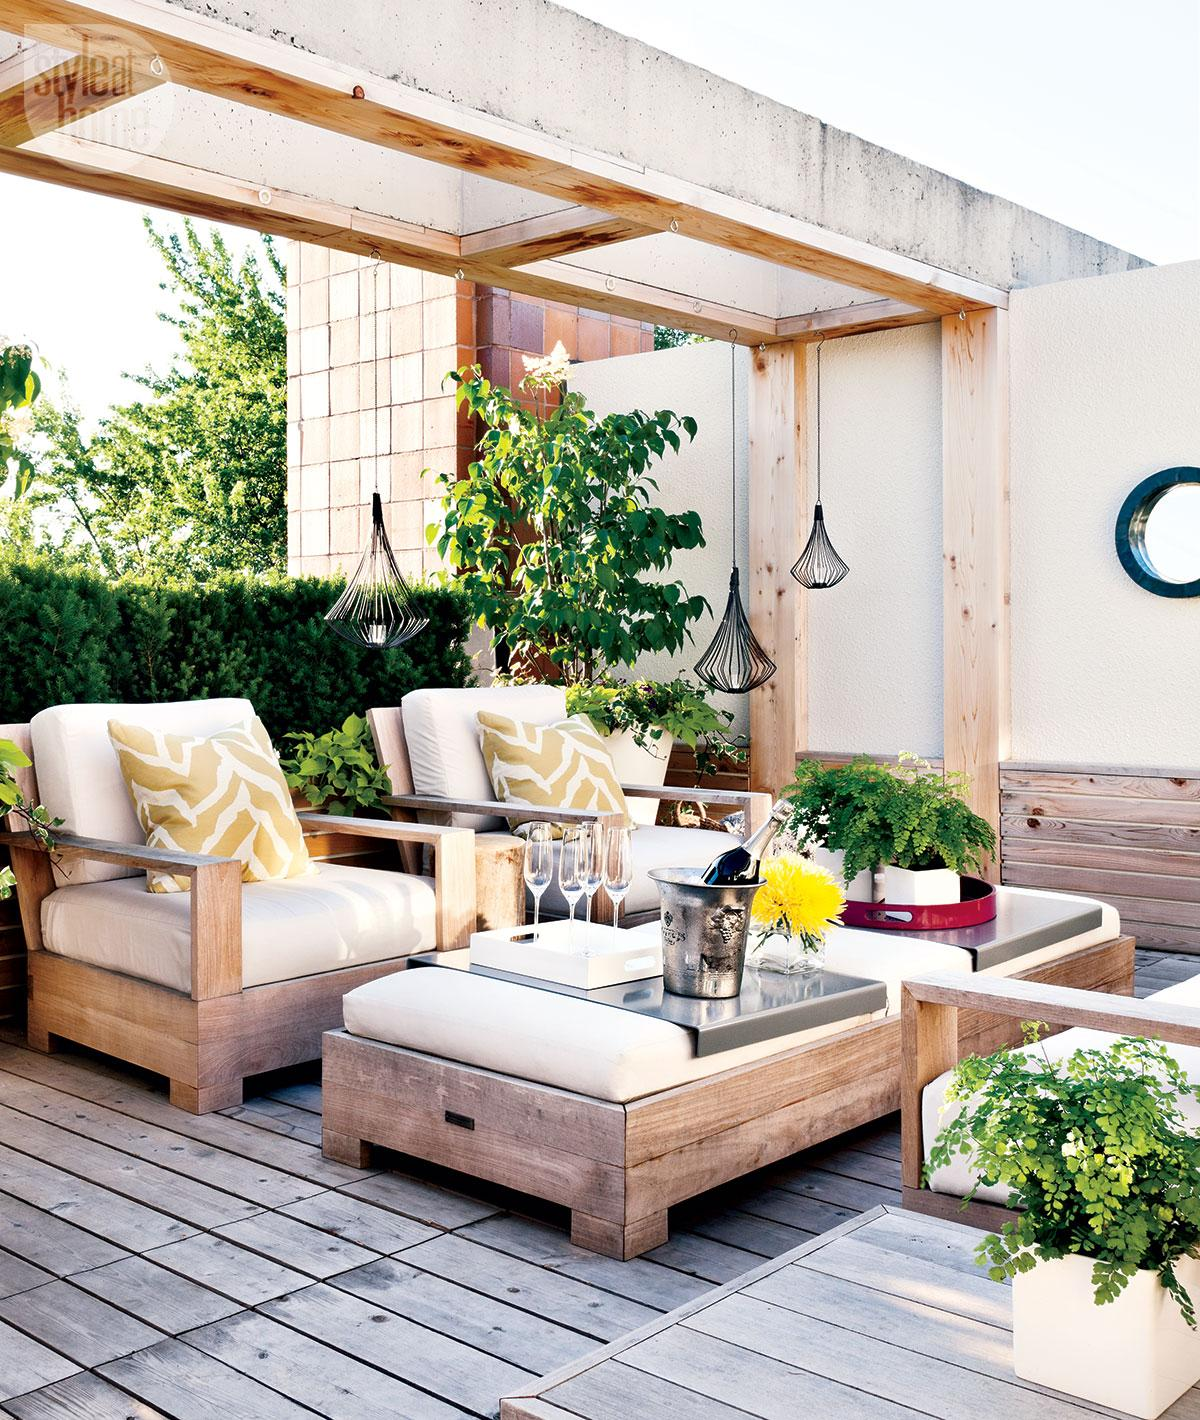 Patio ideas for style living 4